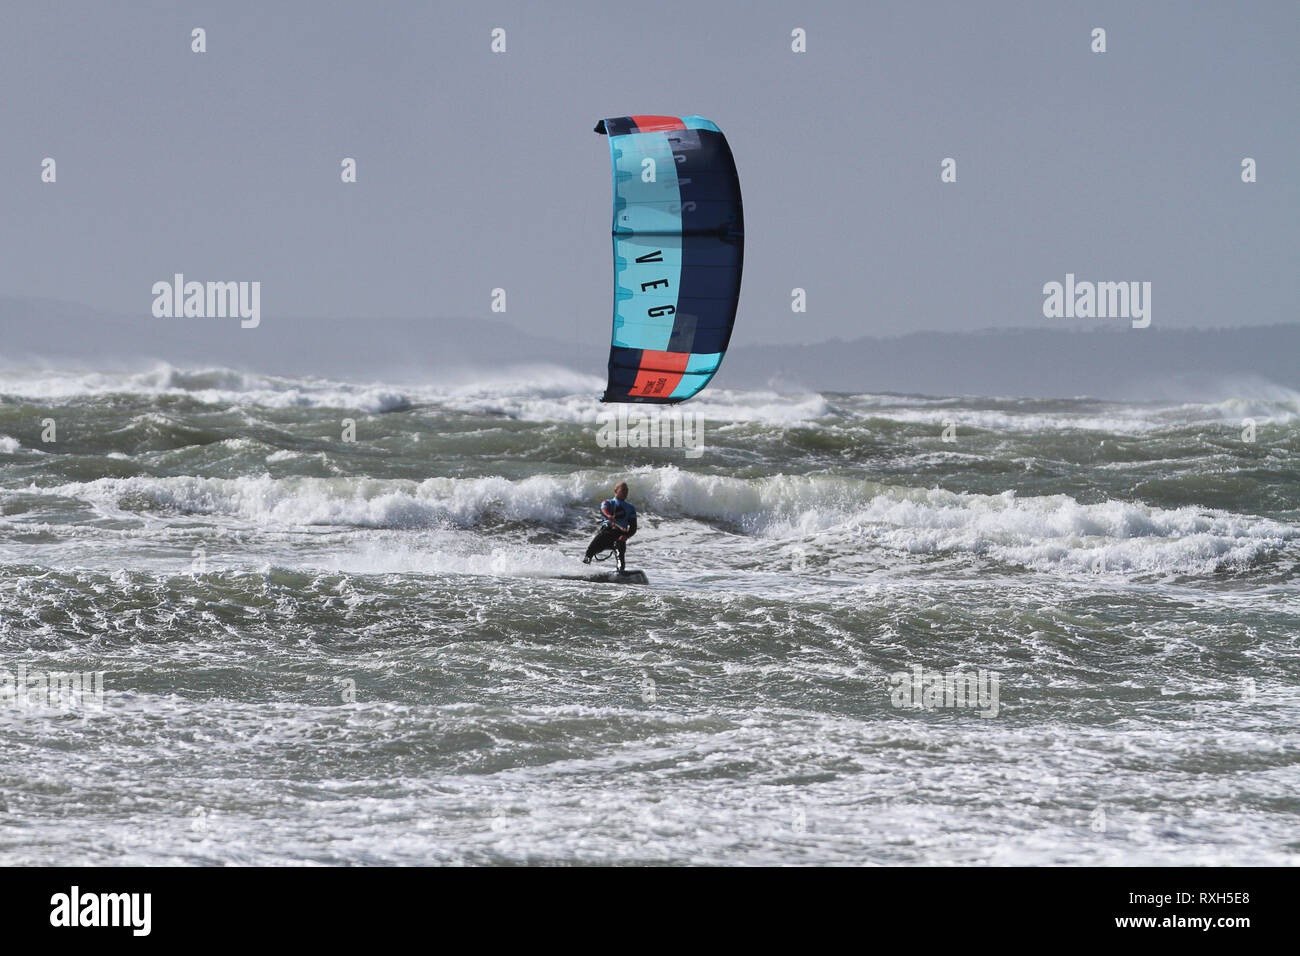 West Strand, West Wittering, Sussex, UK. 10th March 2019. Severe gales along the south coast today with gusts of over 60 mph. Four times British Champion Kitesurfer Lewis Crathern, famed for jumping his kitesurfer over Brighton Pier, in action at 2XS Watersports at West Wittering beach in West Sussex. Credit: james jagger/Alamy Live News - Stock Image